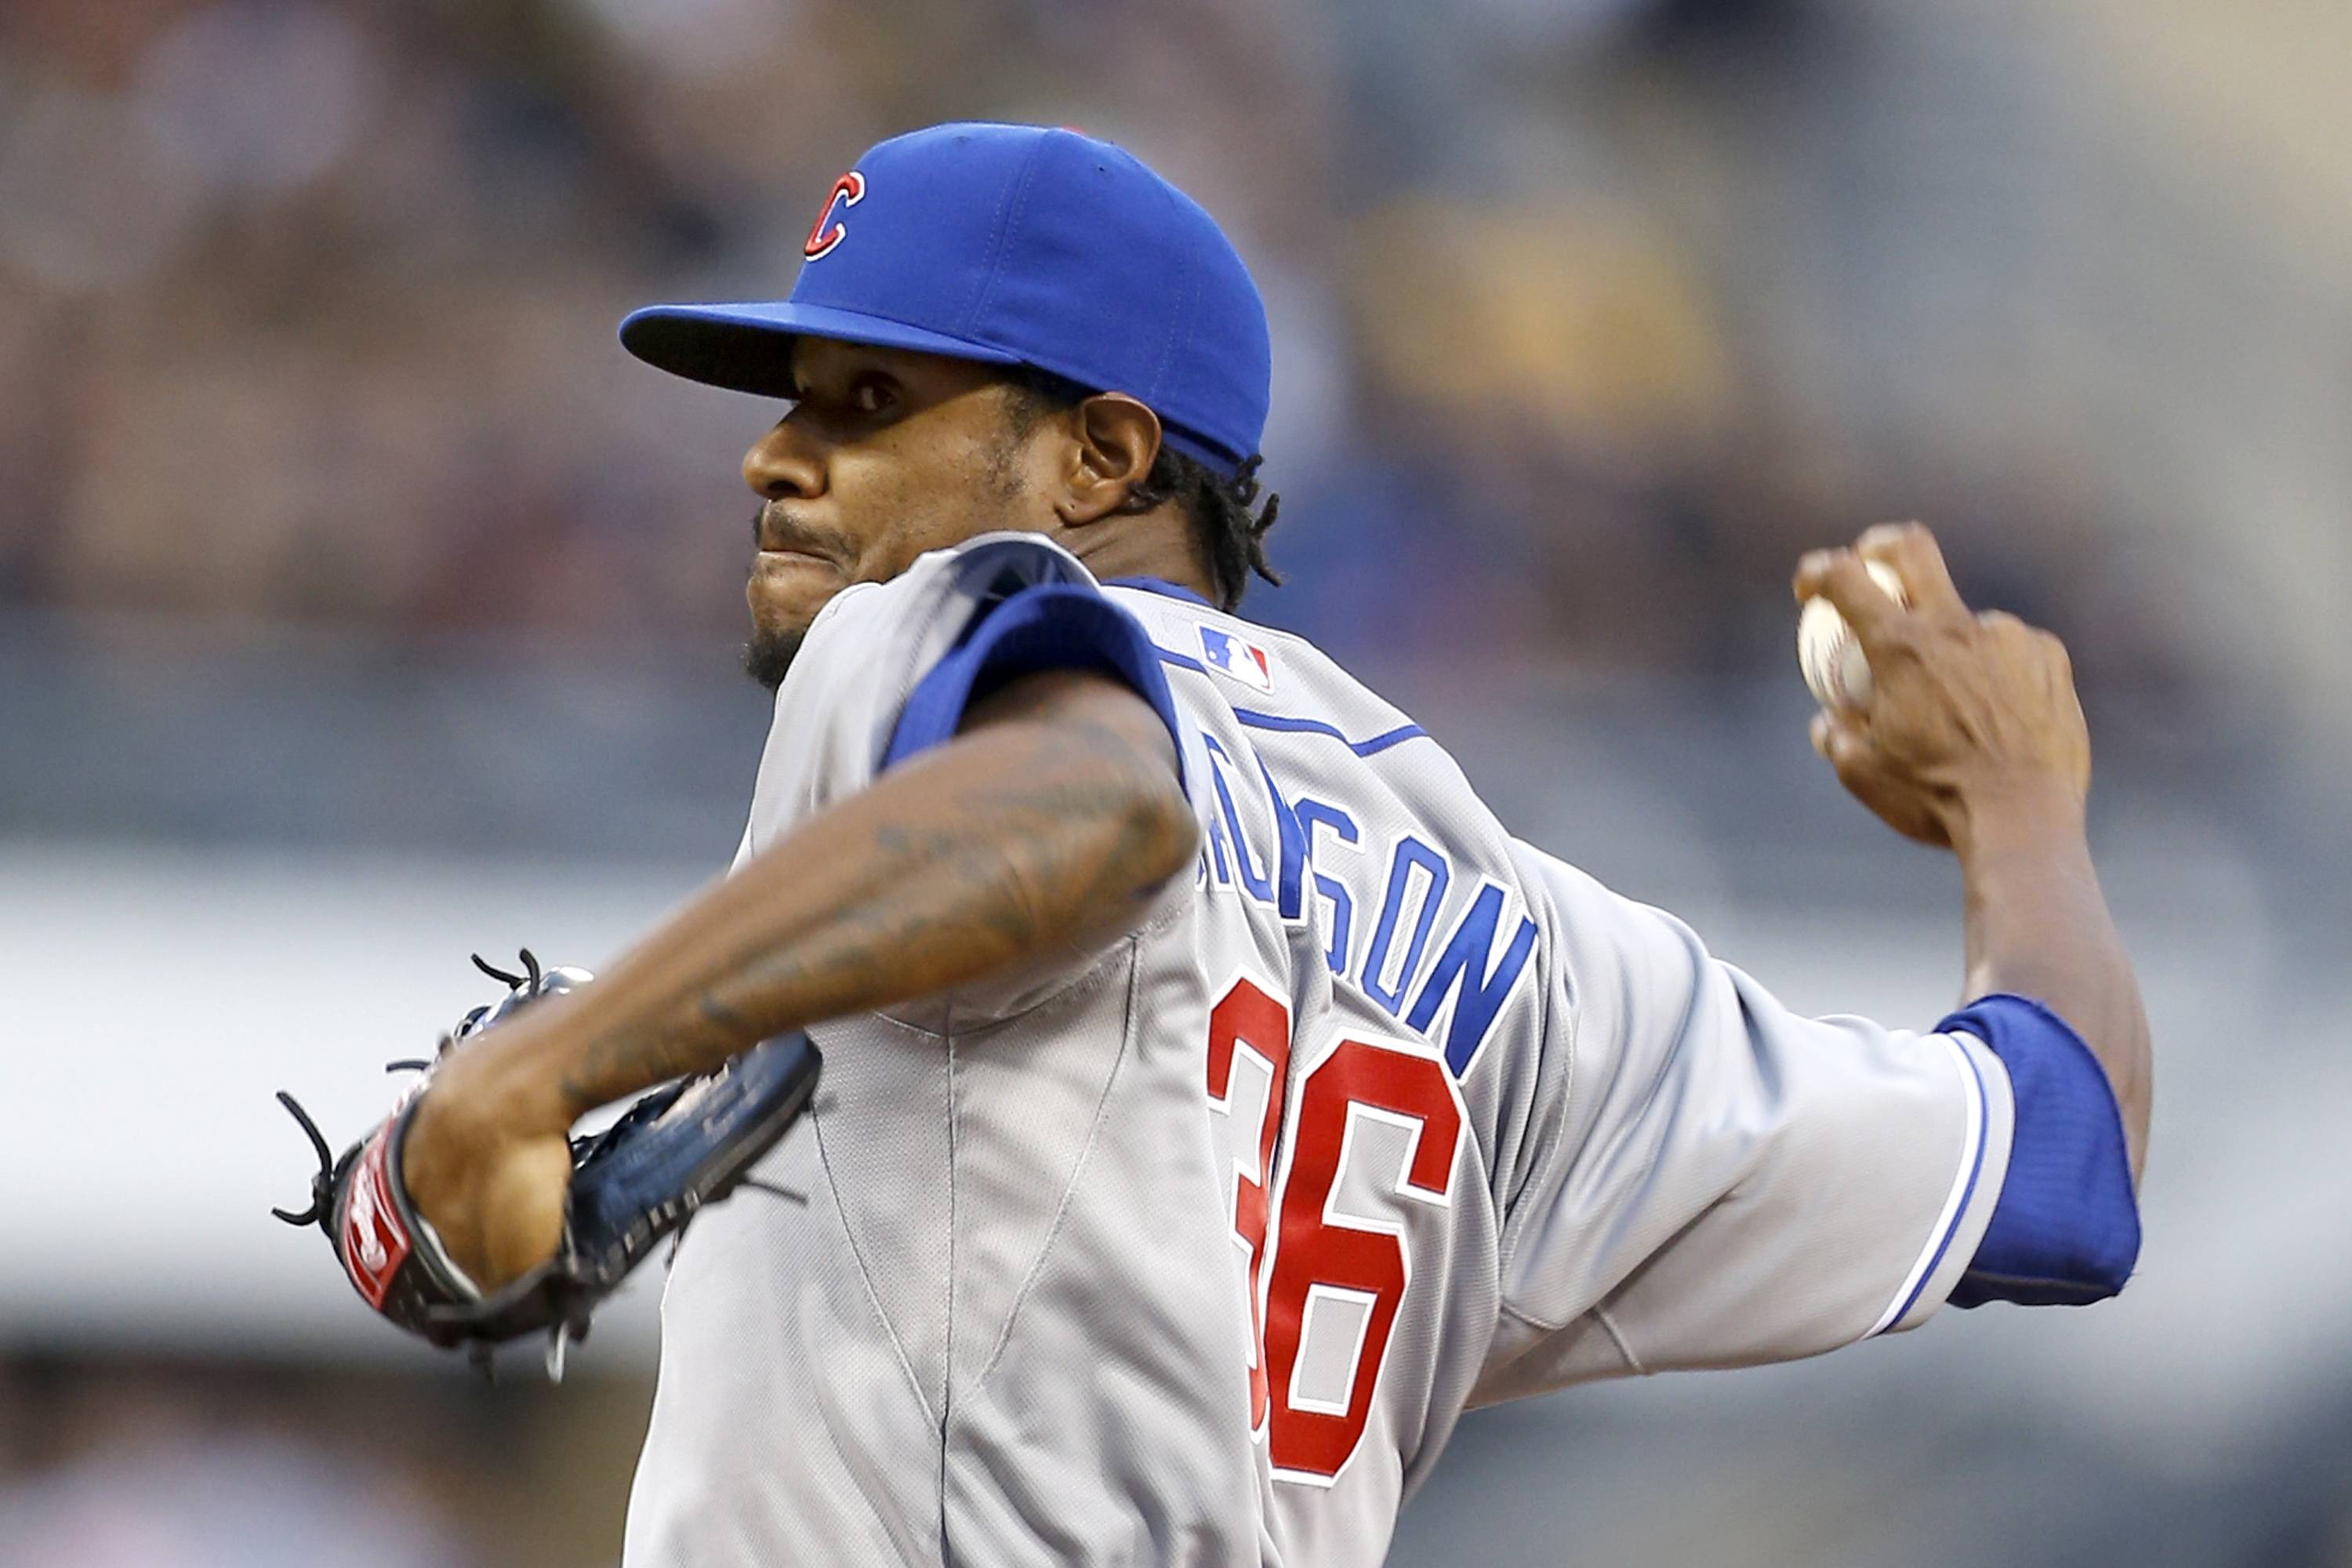 Cubs starting pitcher Edwin Jackson winds up during the first inning of Wednesday night's game against the Pirates in Pittsburgh. Jackson allowed 2 runs (1 earned) on 2 hits in 5⅓ innings.